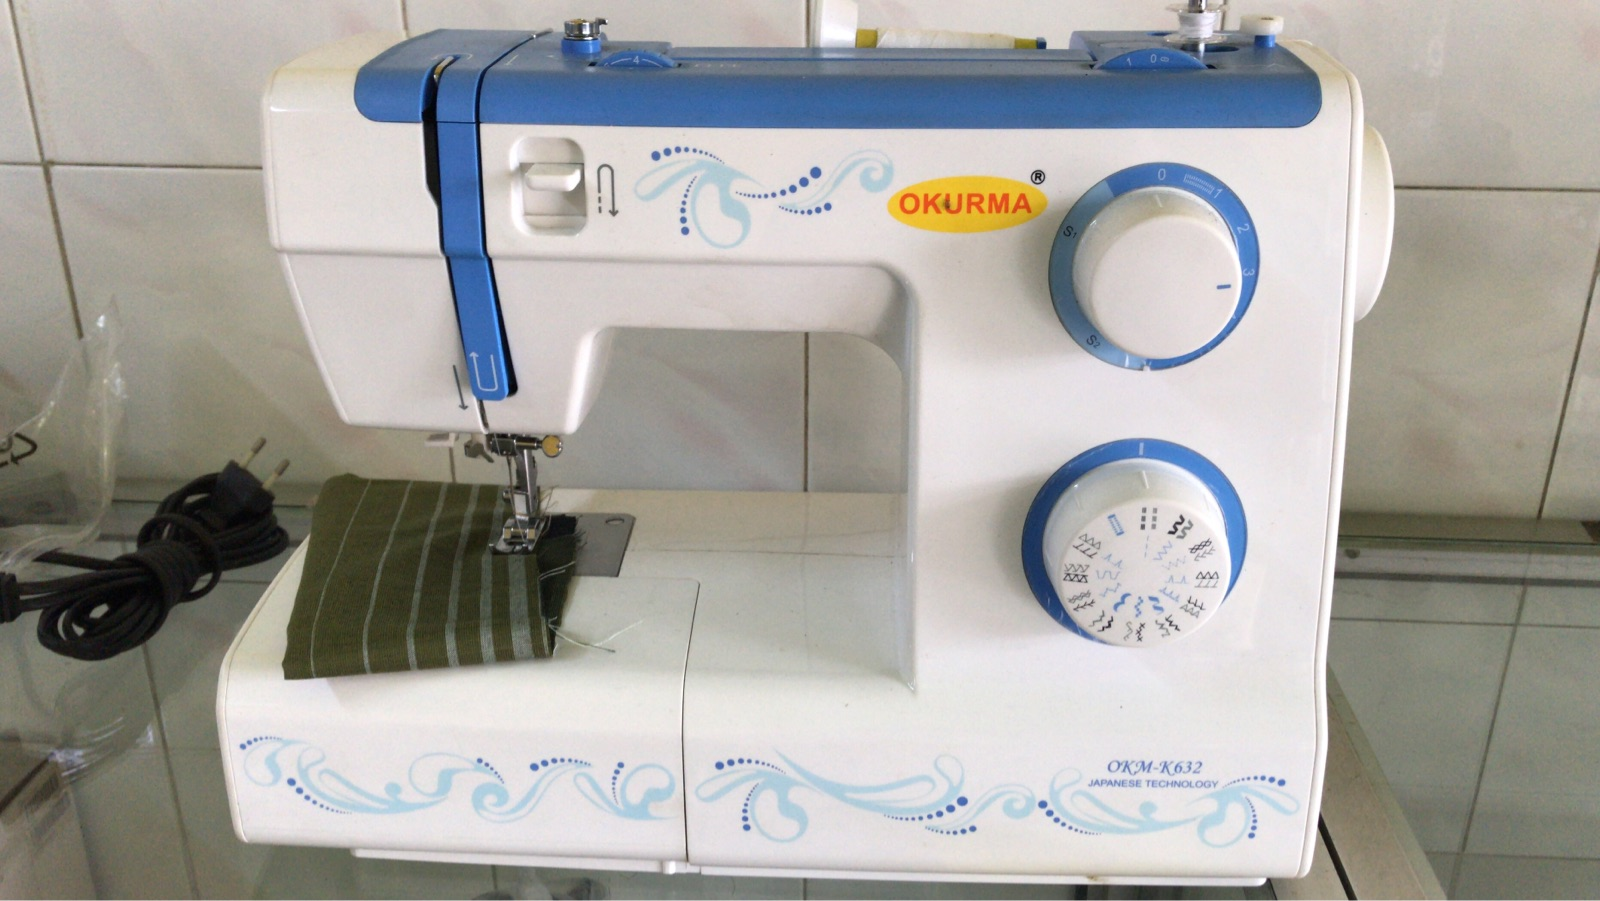 Okurma Sewing Machine